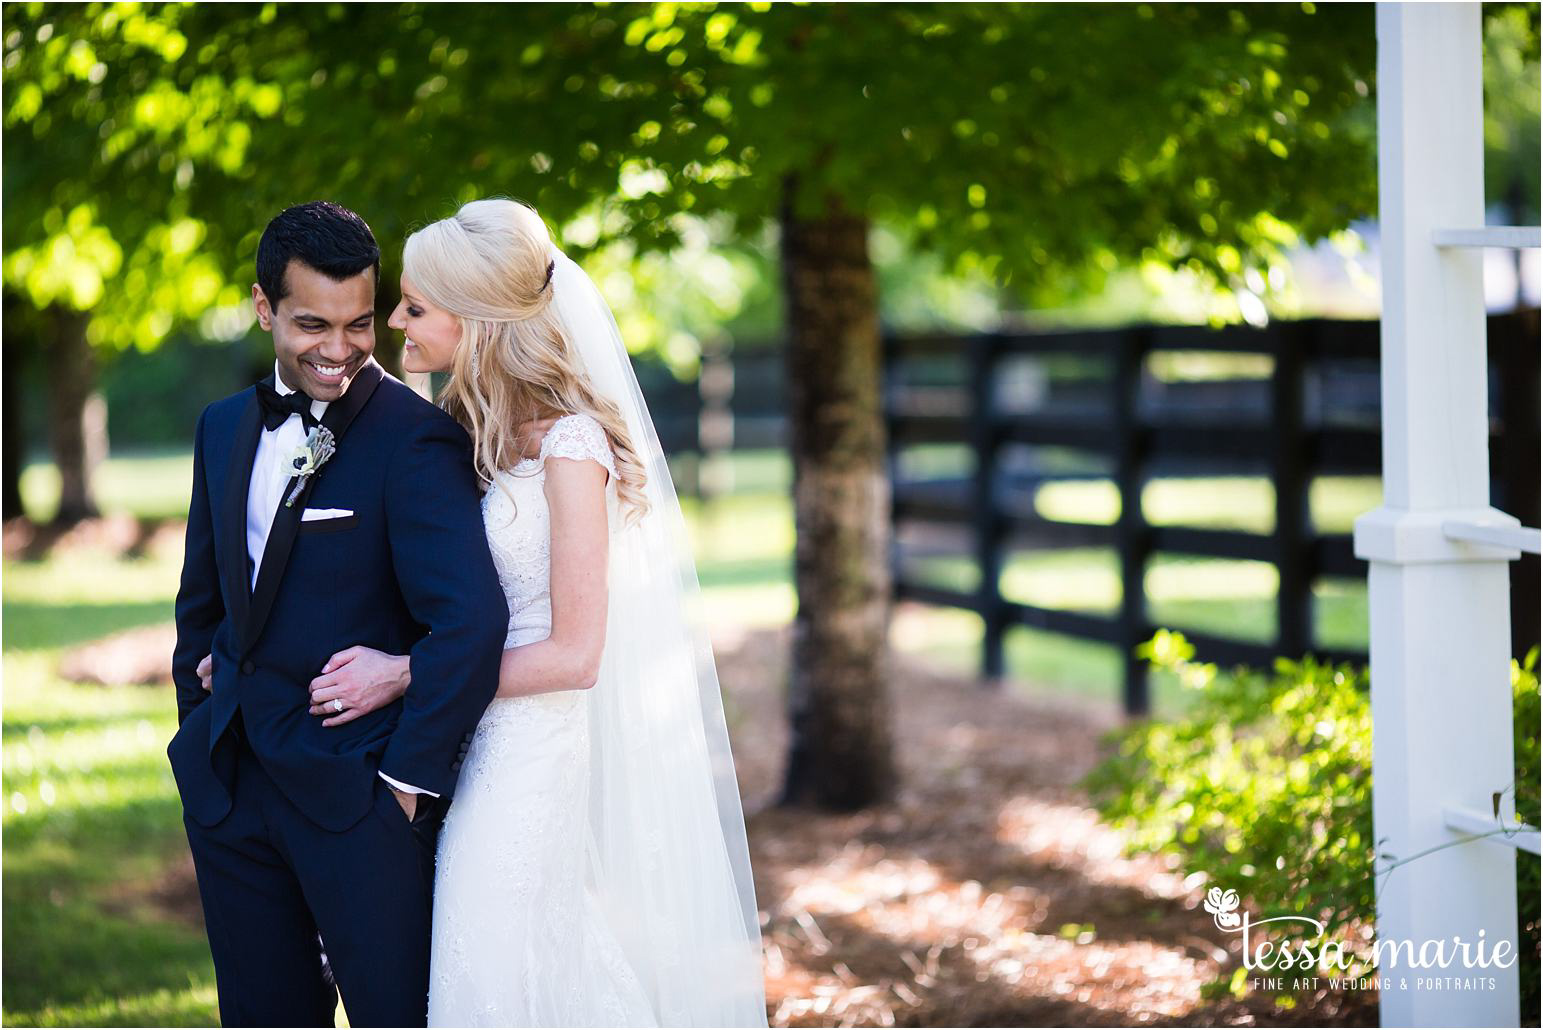 126_foxhall_stables_wedding_atlantas_finest_catering_tessa_marie_weddings